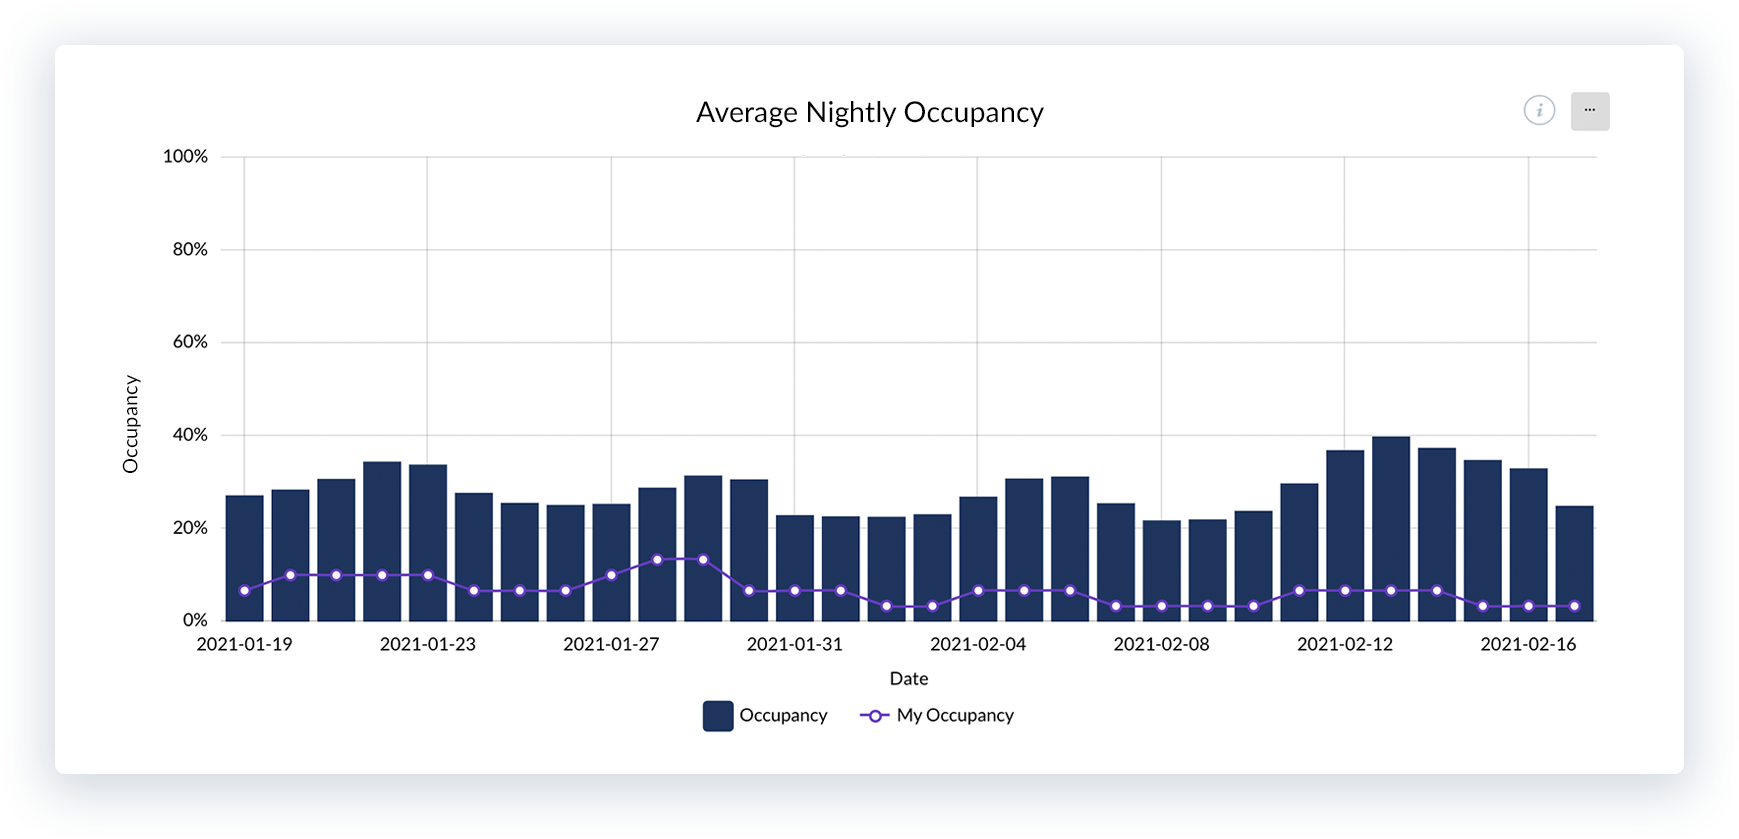 Increase vacation rental occupancy - Avg. Nightly occupancy